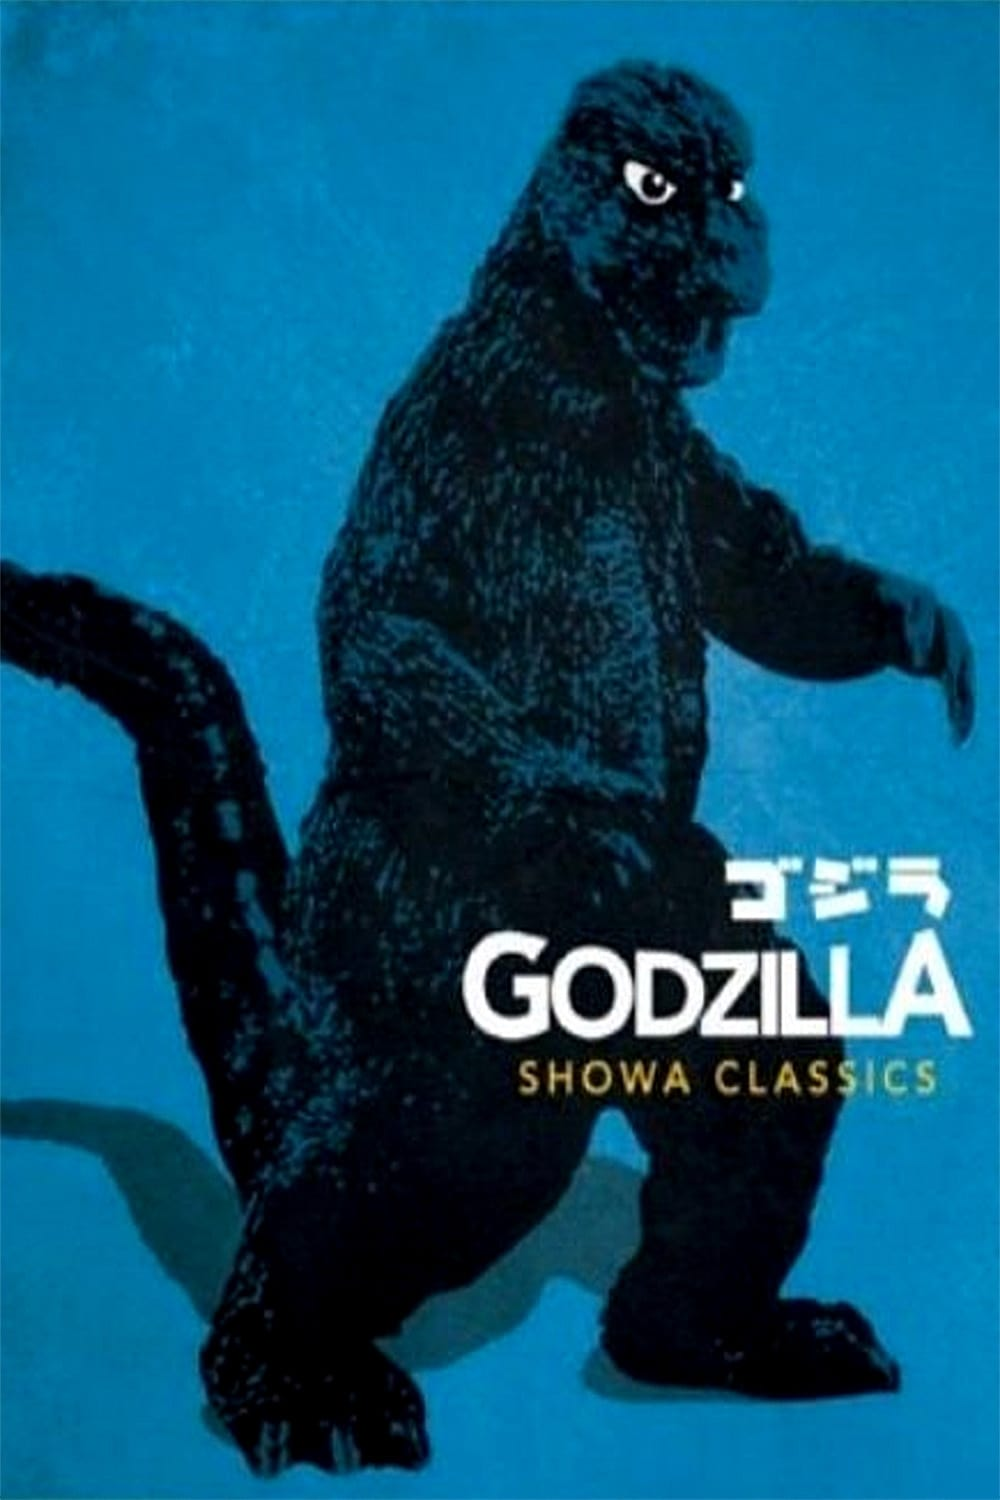 All Movies From Godzilla Showa Collection Saga Are On